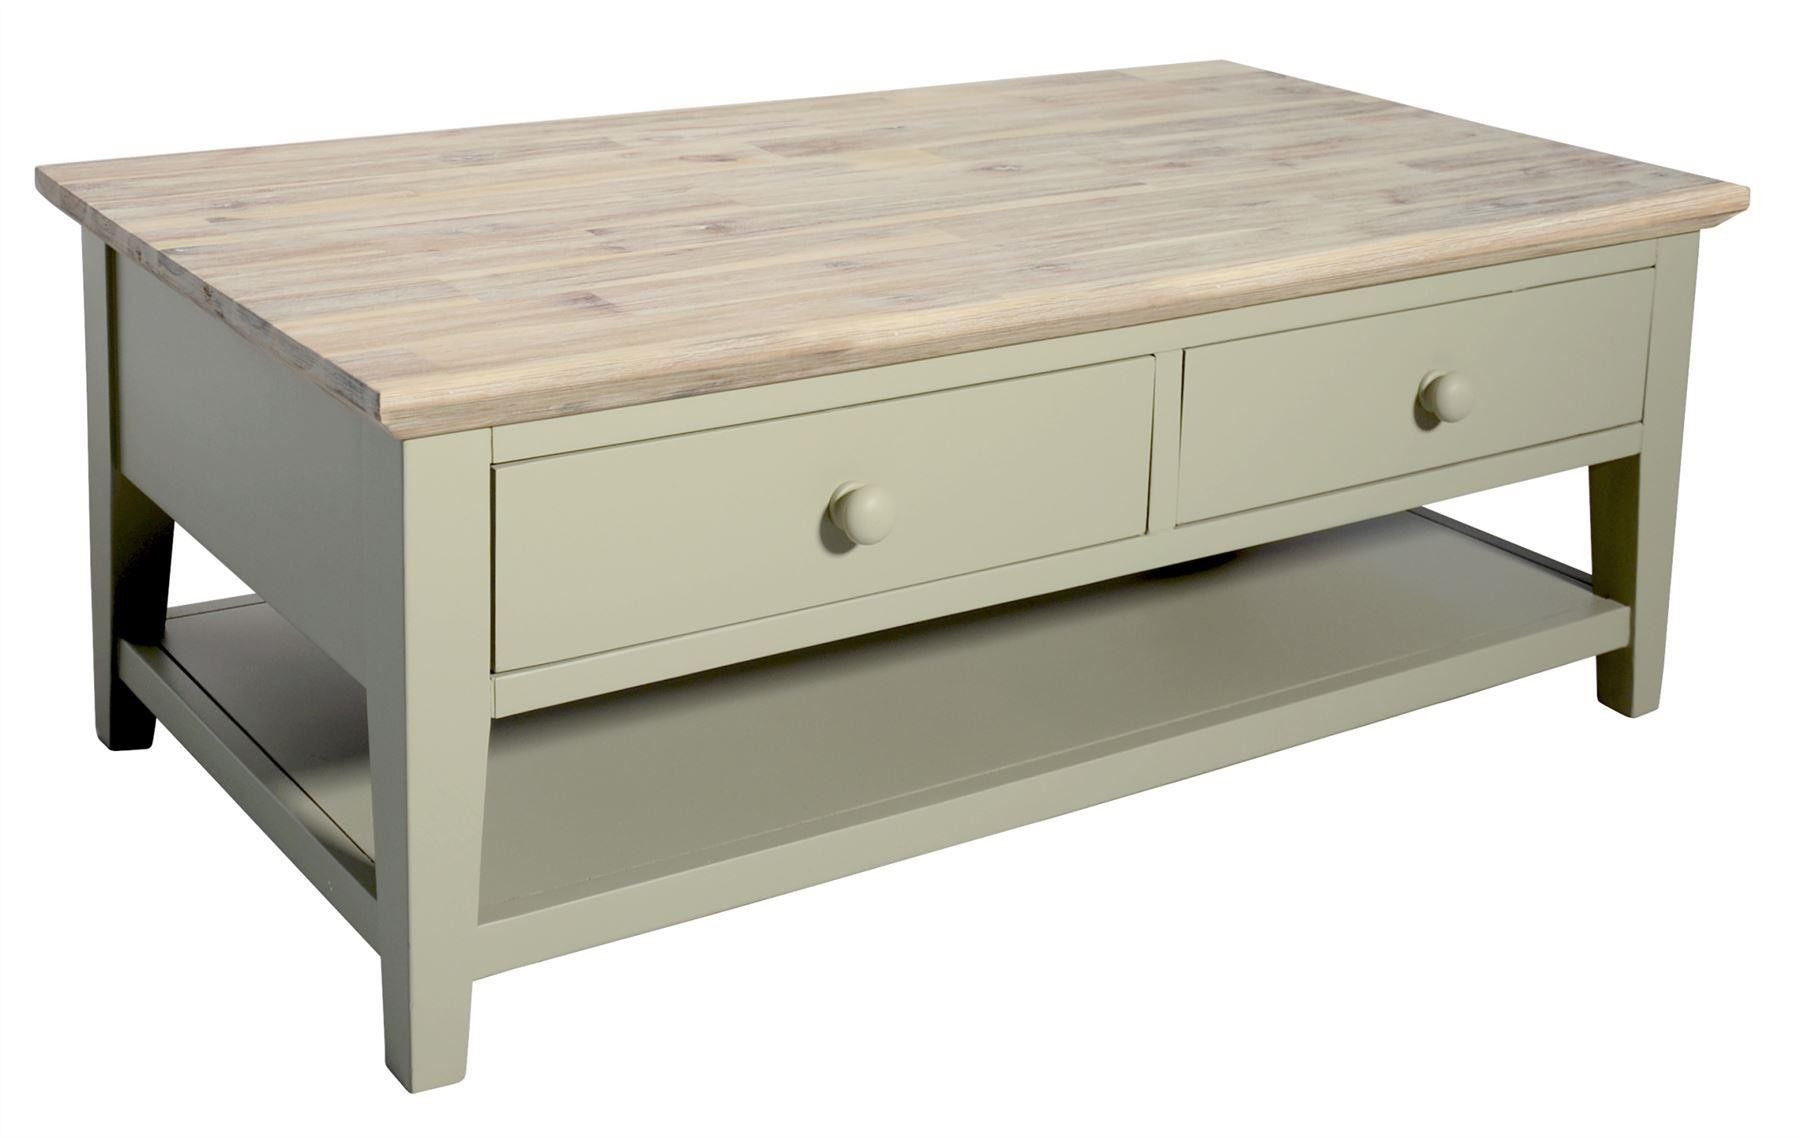 Florence Coffee Table With 2 Drawers And Shelf Sage Green Green Coffee Tables Coffee Table With Drawers Pine Coffee Table [ 1138 x 1800 Pixel ]